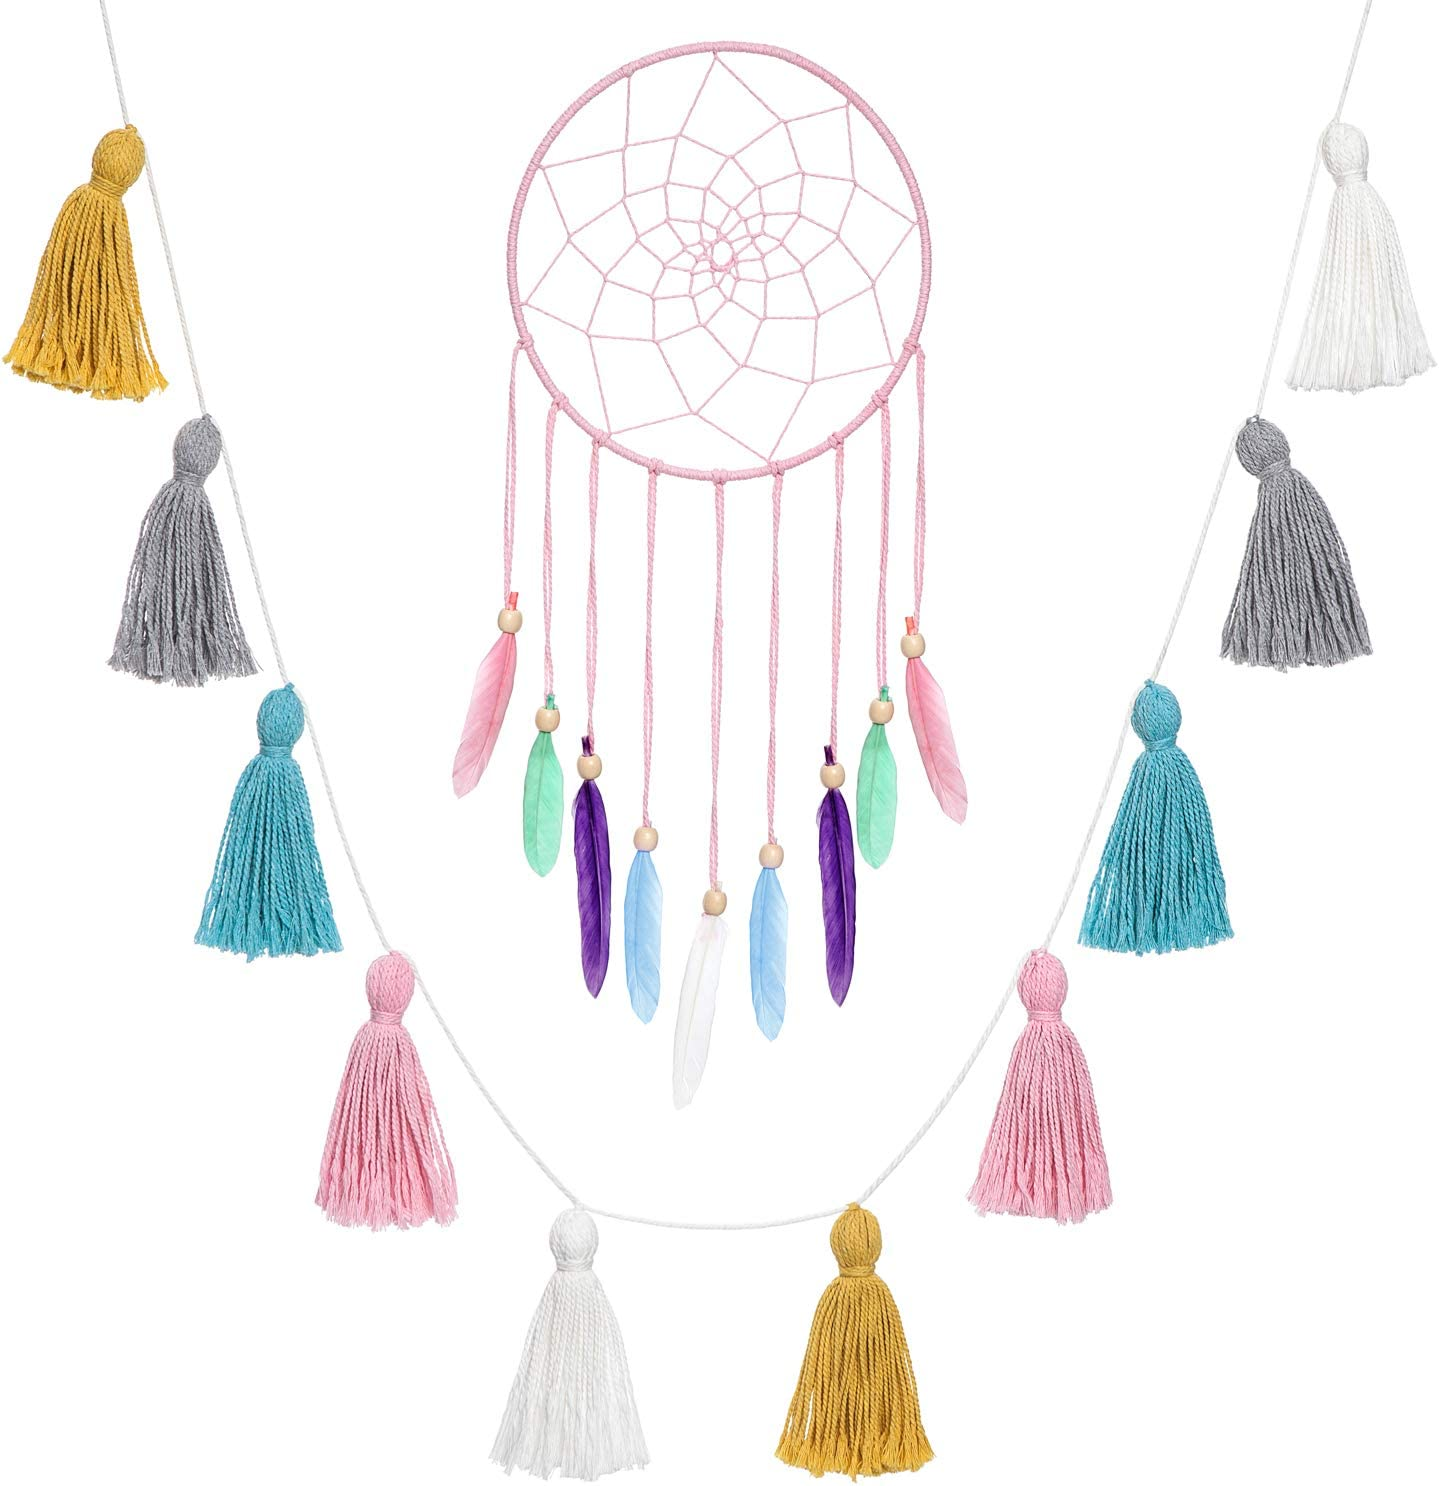 Isuesee Pink Dream Catcher with Feathers and Colorful Cotton Tassels Garland Boho Wall Hanging for Home Decor,Party Decor,Kids Bedroom,Nursey Room,Set of 2